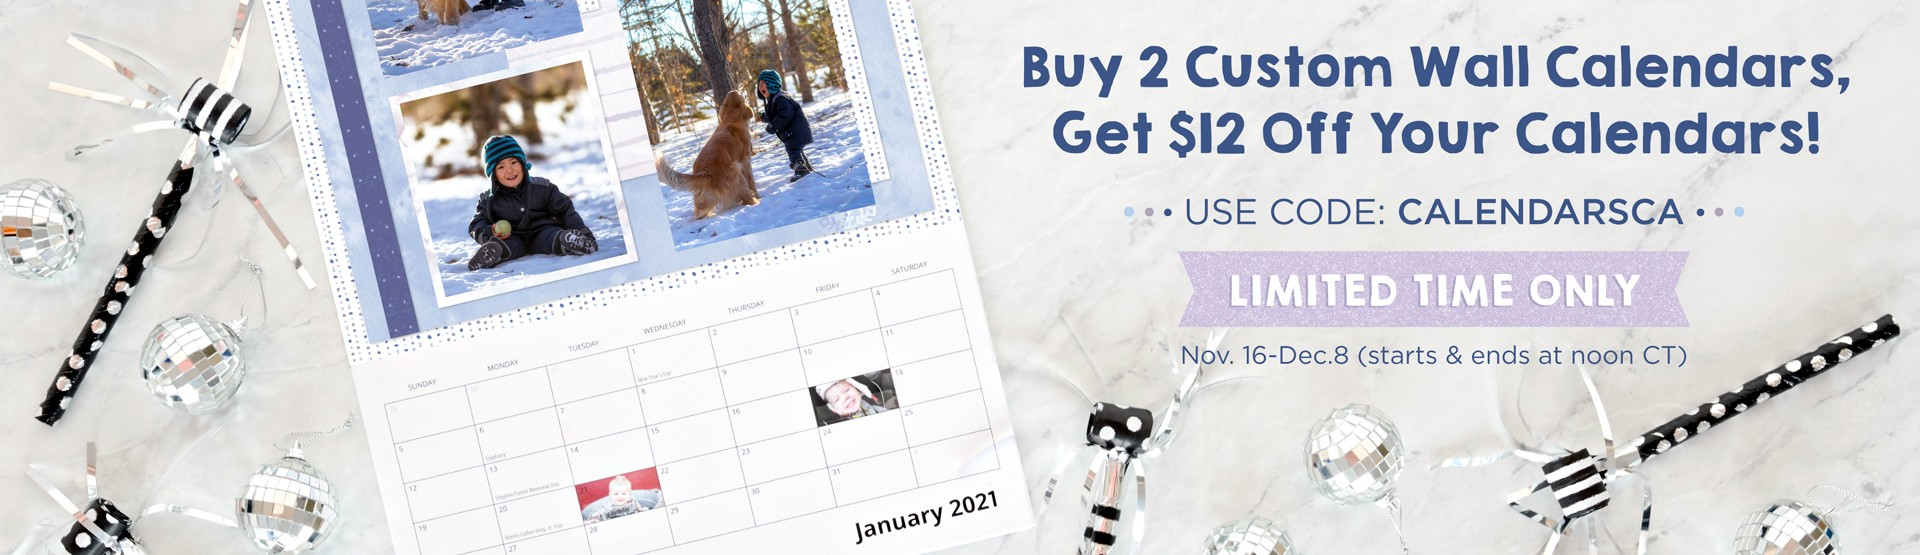 LIMITED TIME: Custom Wall Calendars